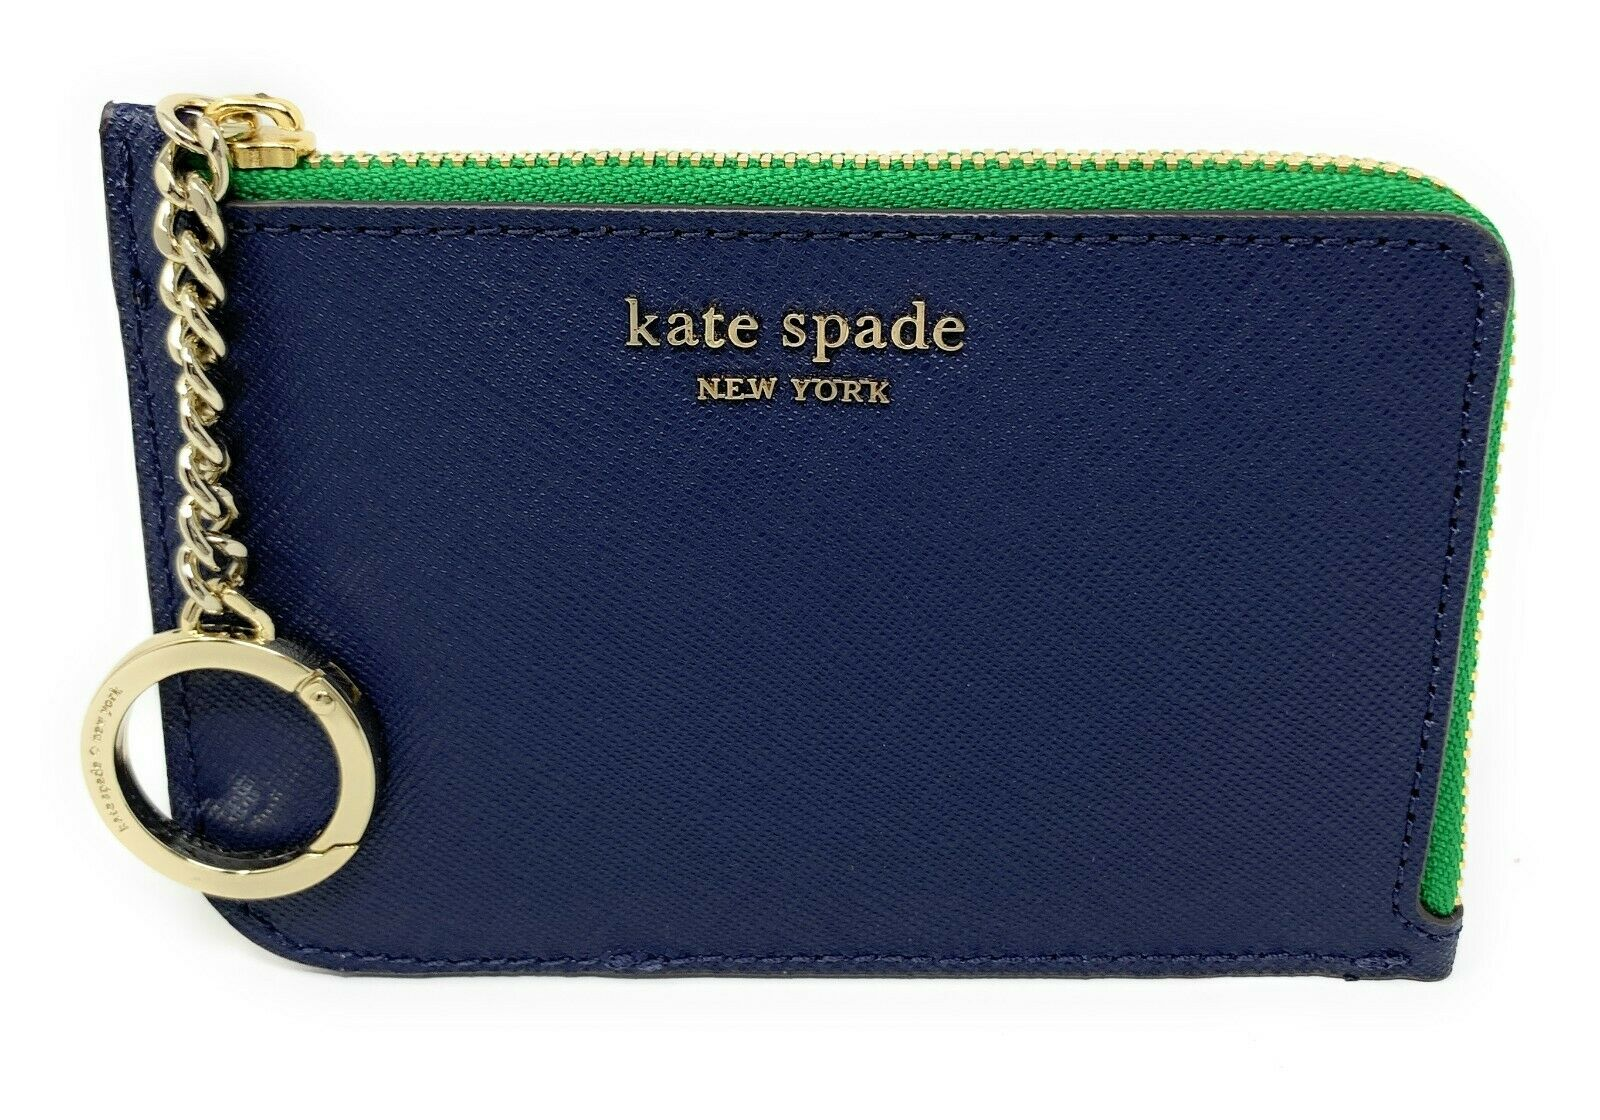 Kate Spade Cameron Medium L-Zip Card Holder Blazer Blue / White / Green WLRU5439 $89